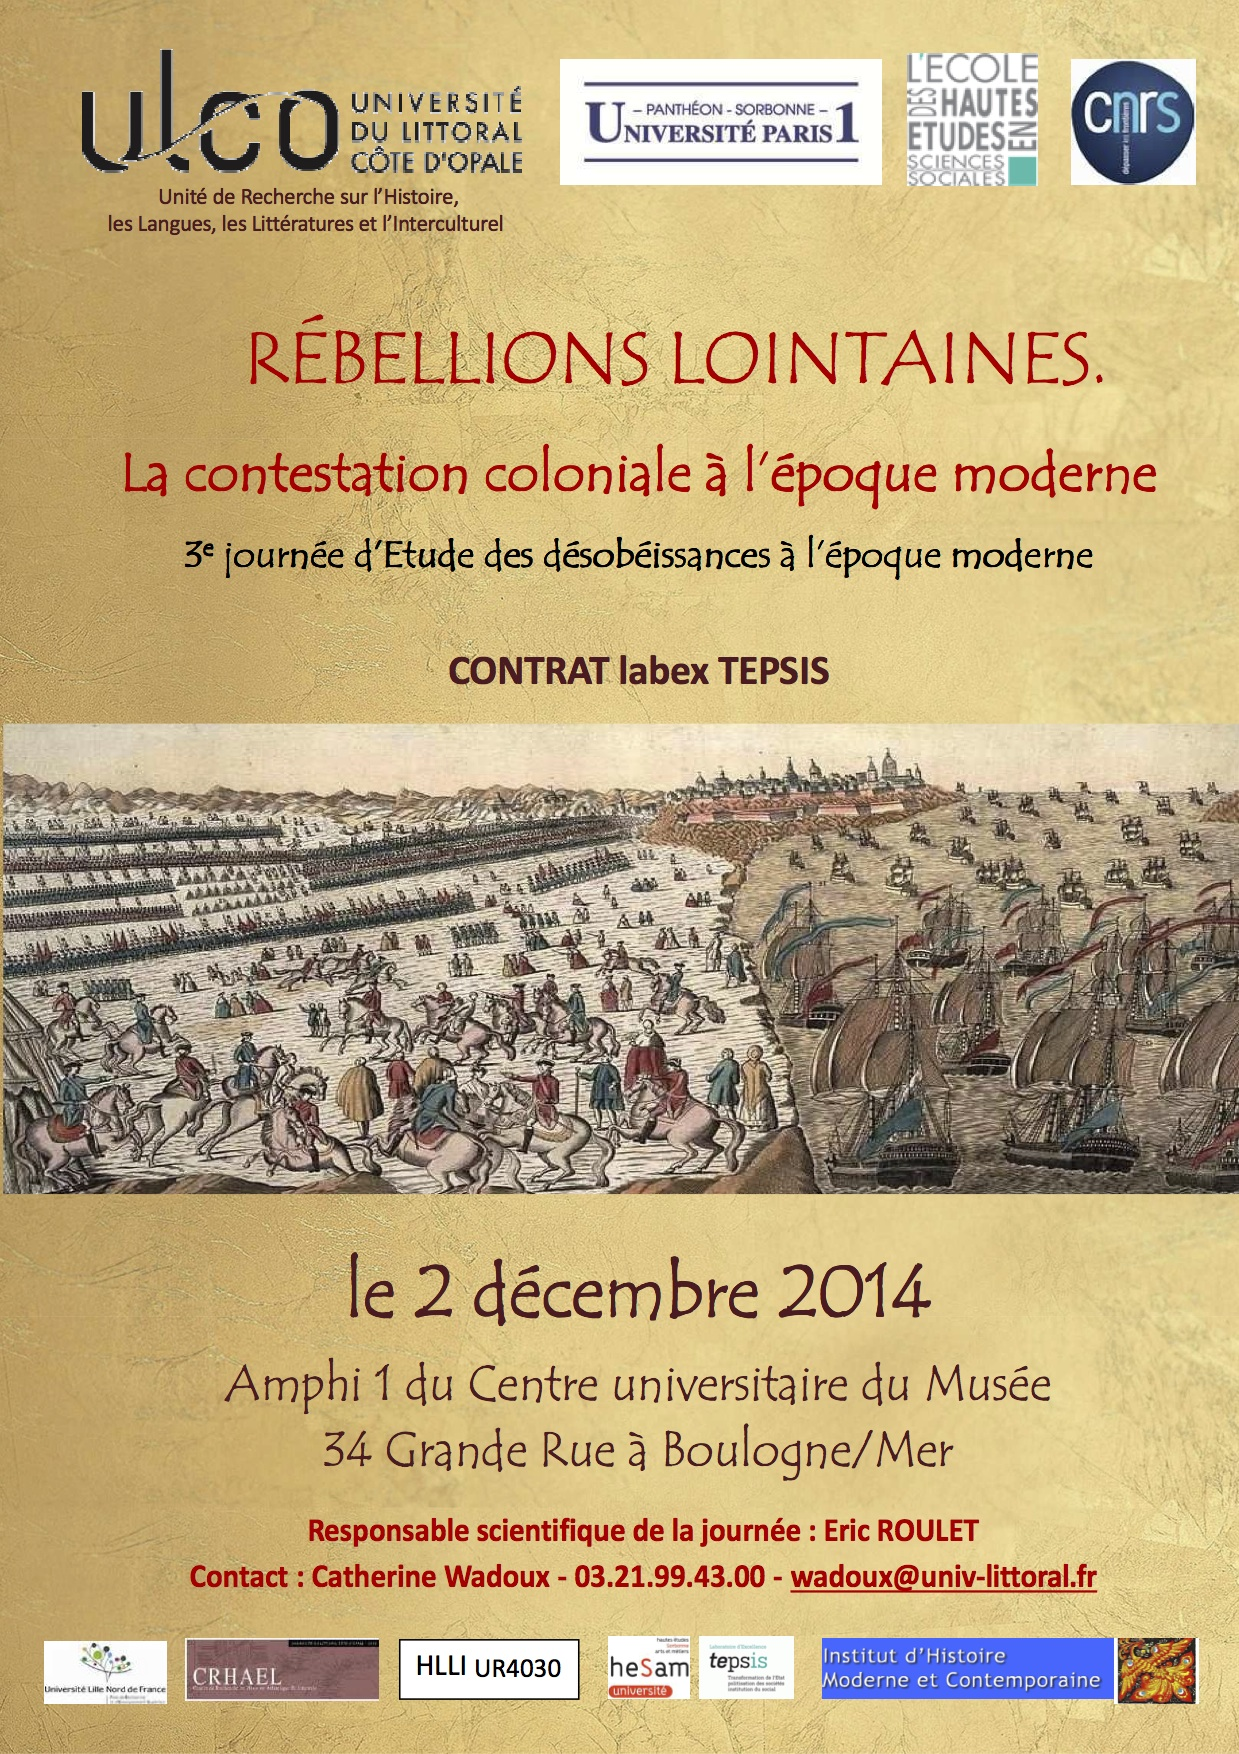 rebellions_lointaines-2-12-14-affiche